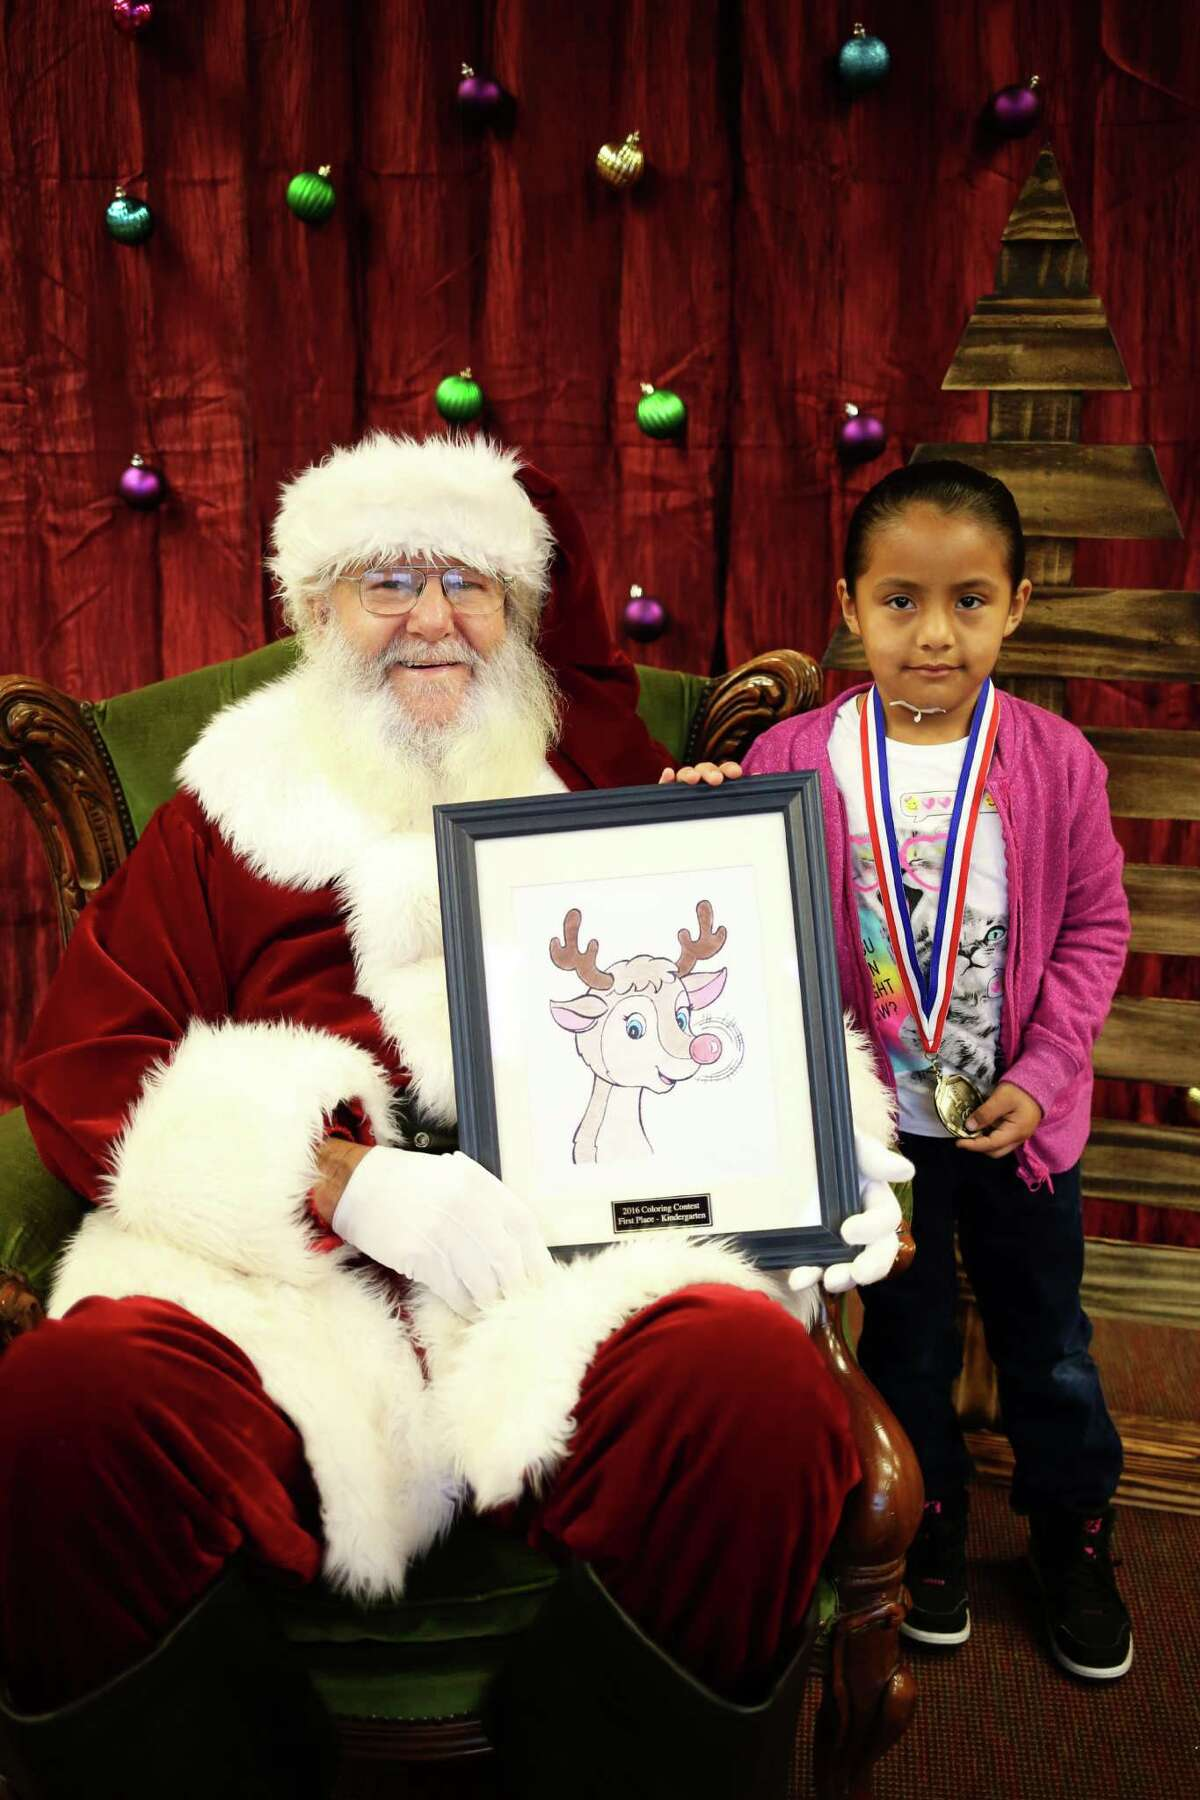 Jocelyn Escoto, pictured with Santa, won first place in the kindergarten grade division of the Hometown Christmas Coloring Contest.